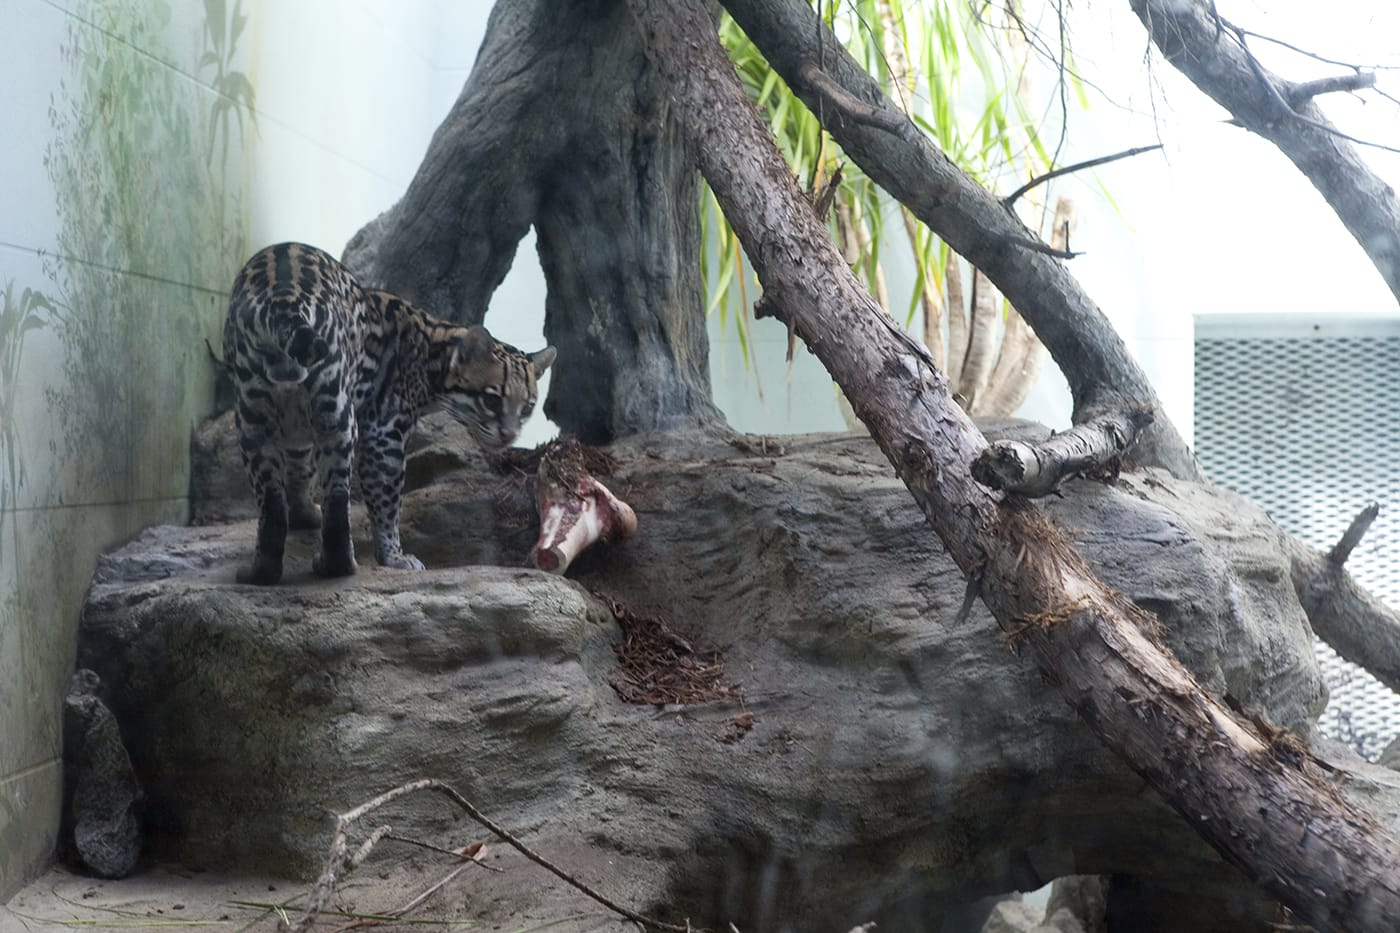 Leopards at Woodland Park Zoo in Seattle, Washington